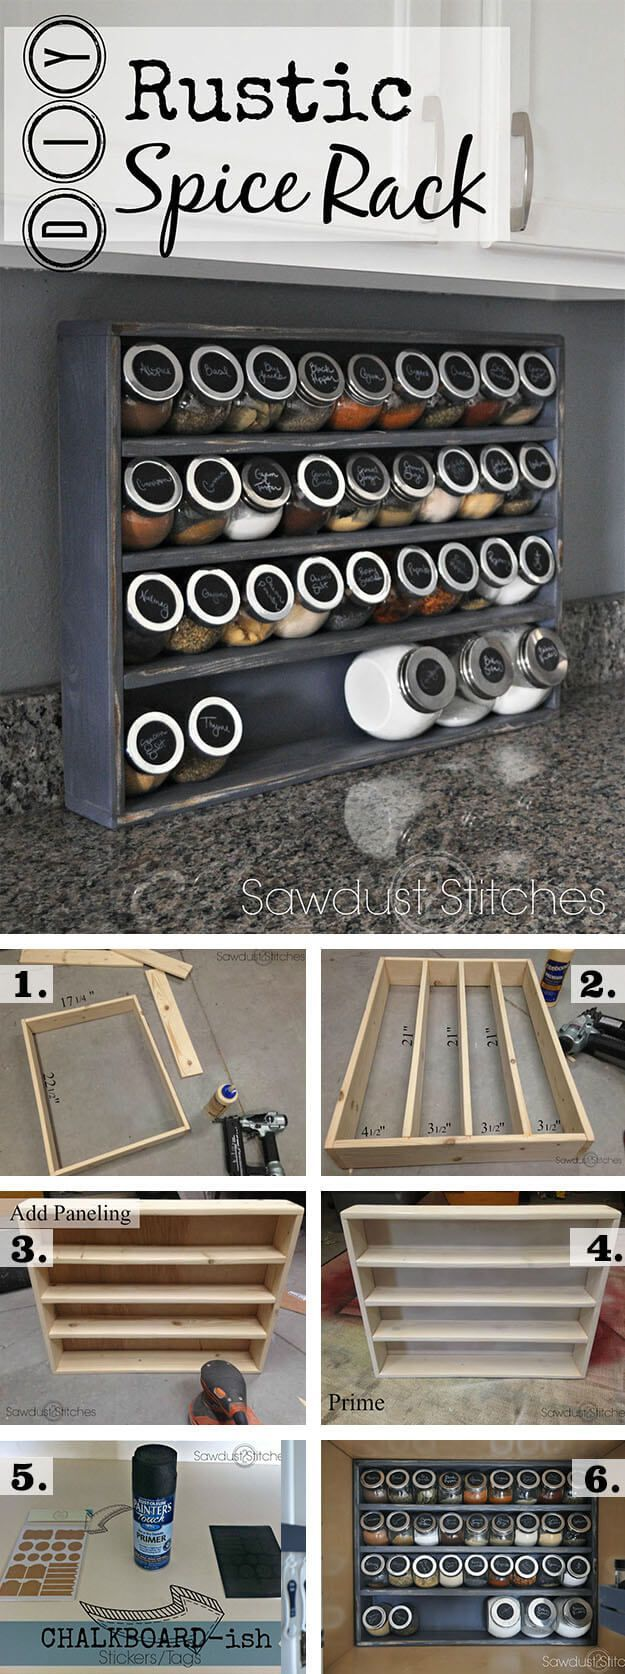 36 Rustic DIY Organization and Storage Projects That Help You Build Your Home ...